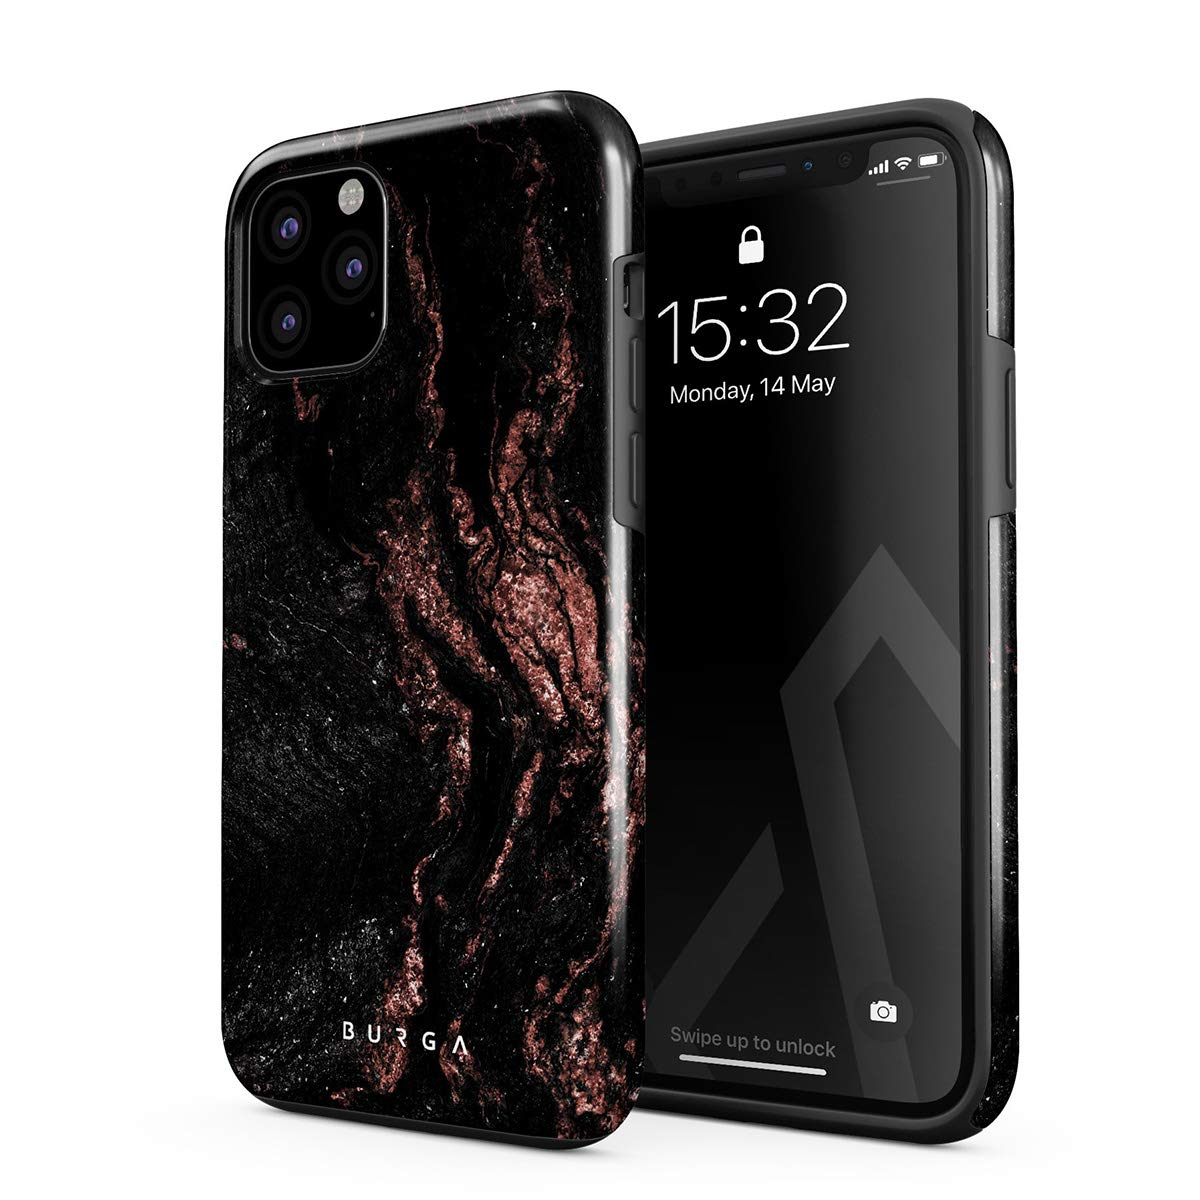 BURGA Phone Case Compatible with iPhone 11 PRO MAX - Copper Wood Rose Gold Marble Cute Case for Woman Heavy Duty Shockproof Dual Layer Hard Shell + Silicone Protective Cover